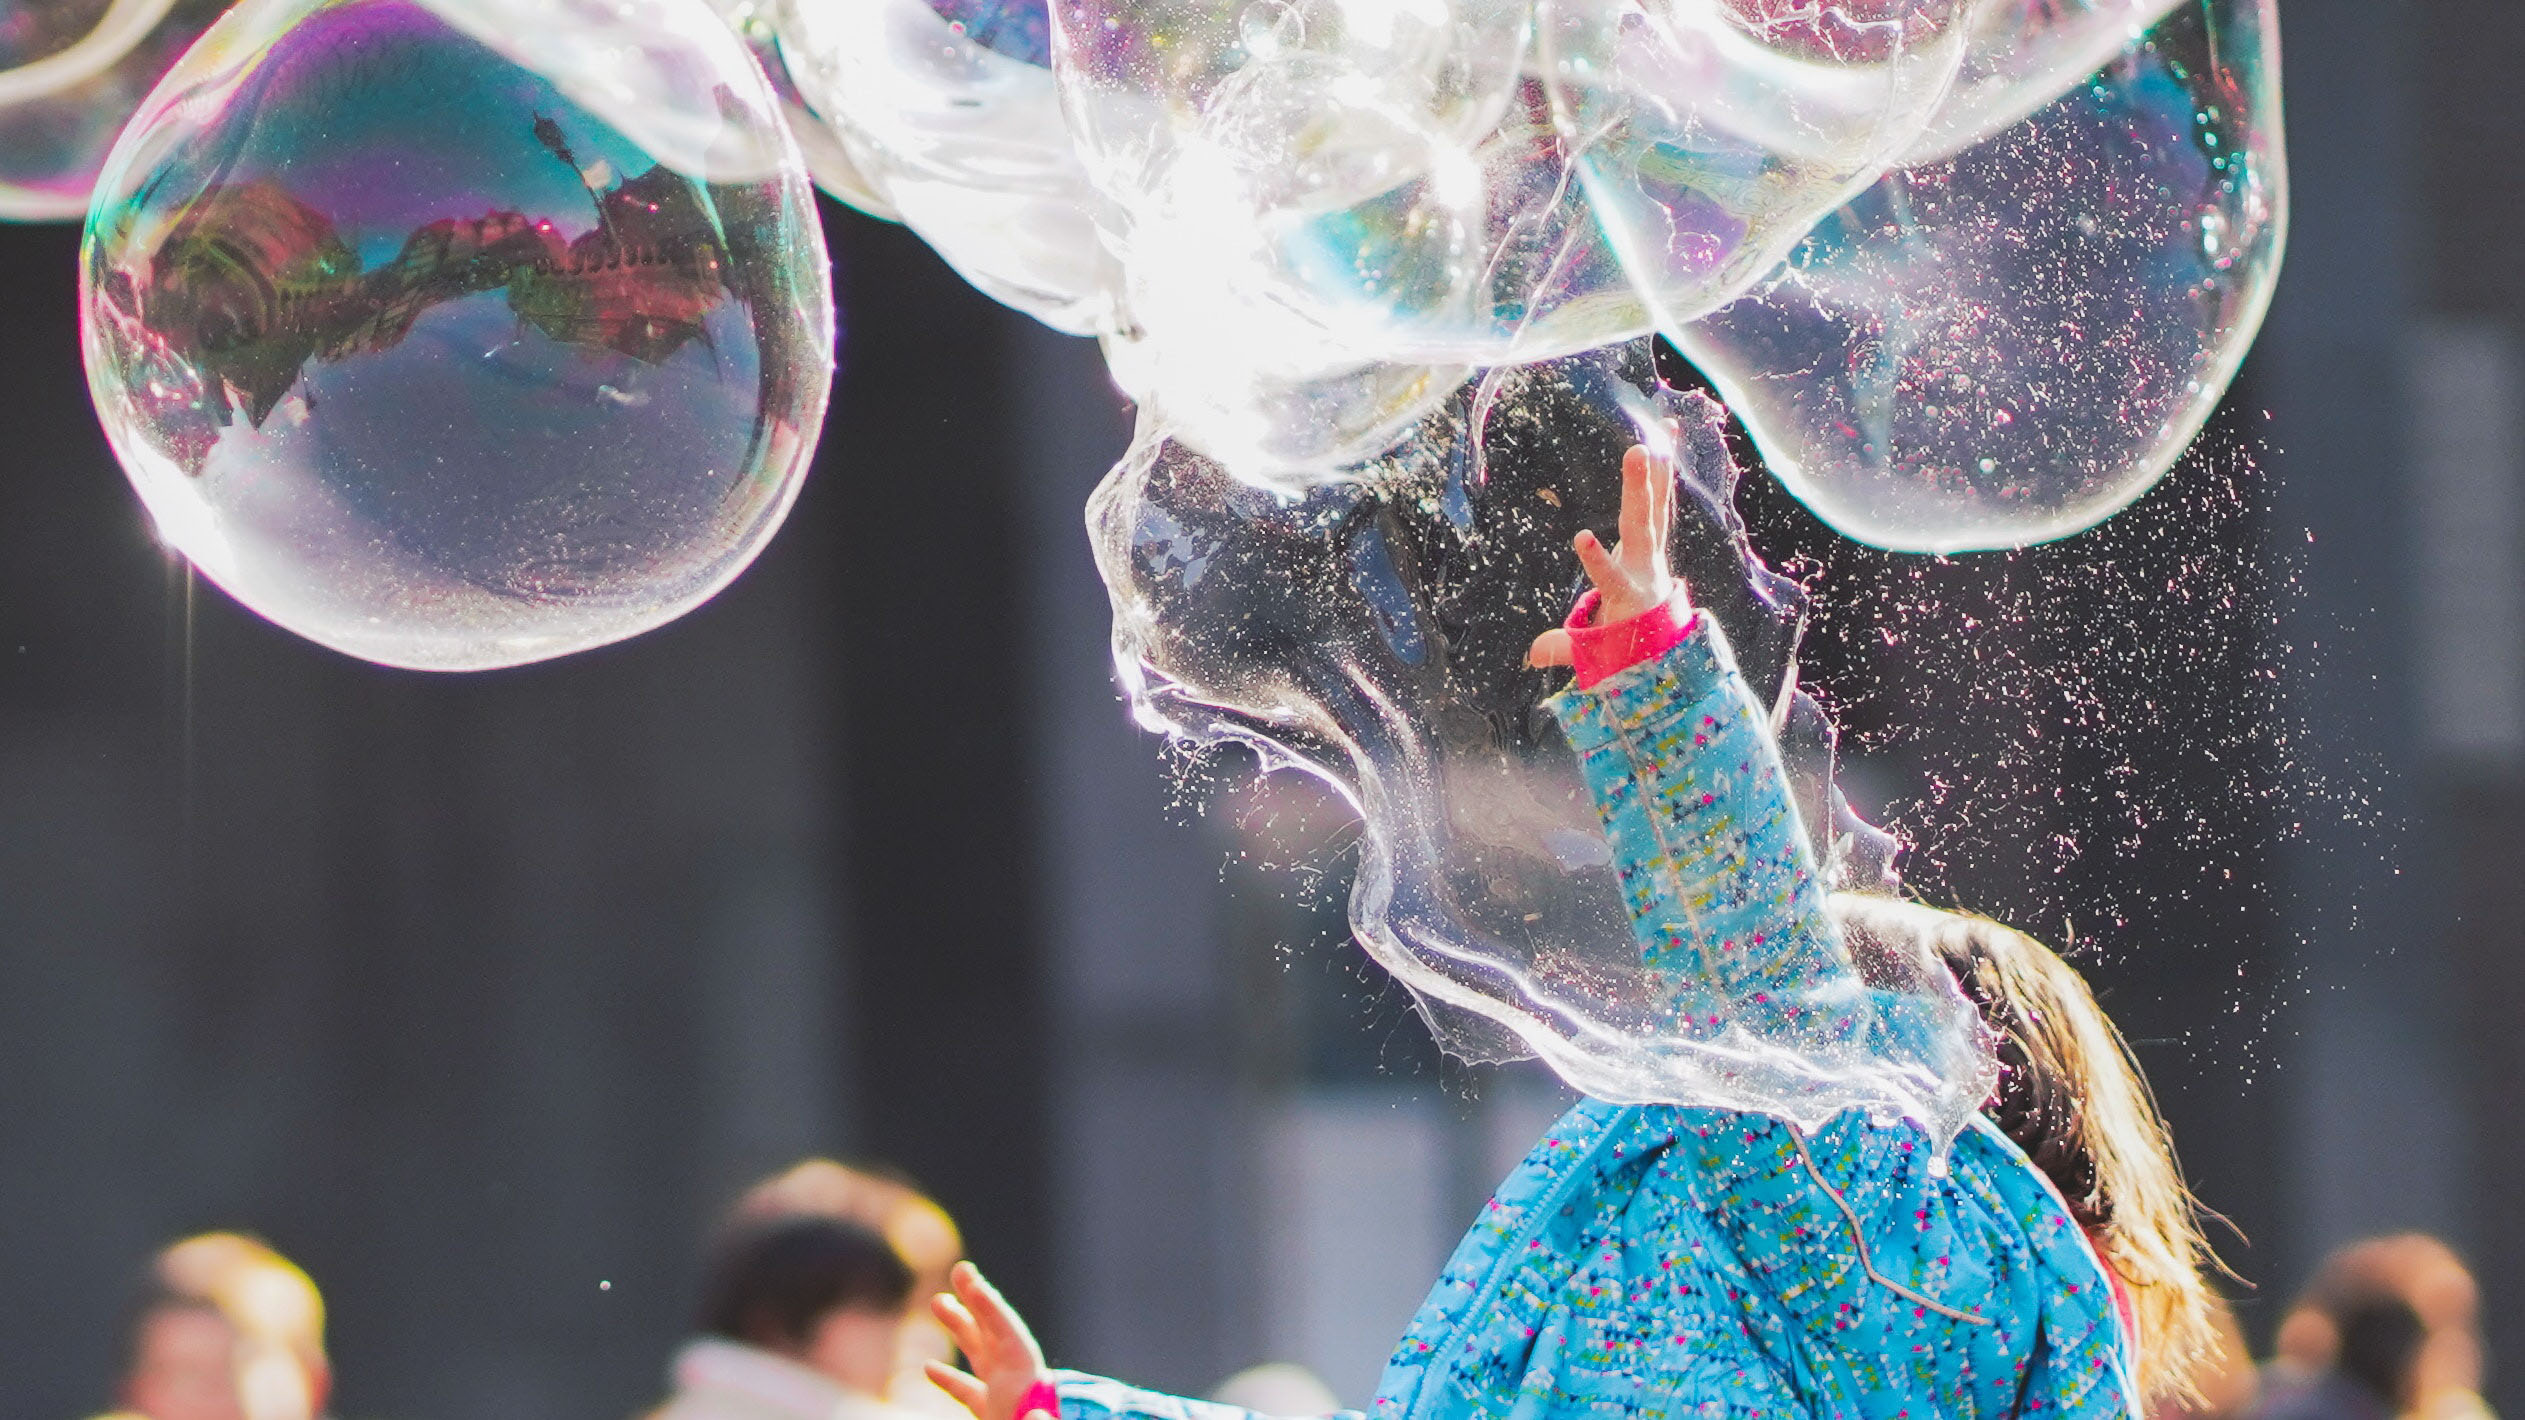 Child in a bright, colourful coat plays with giant bubbles, popping one.